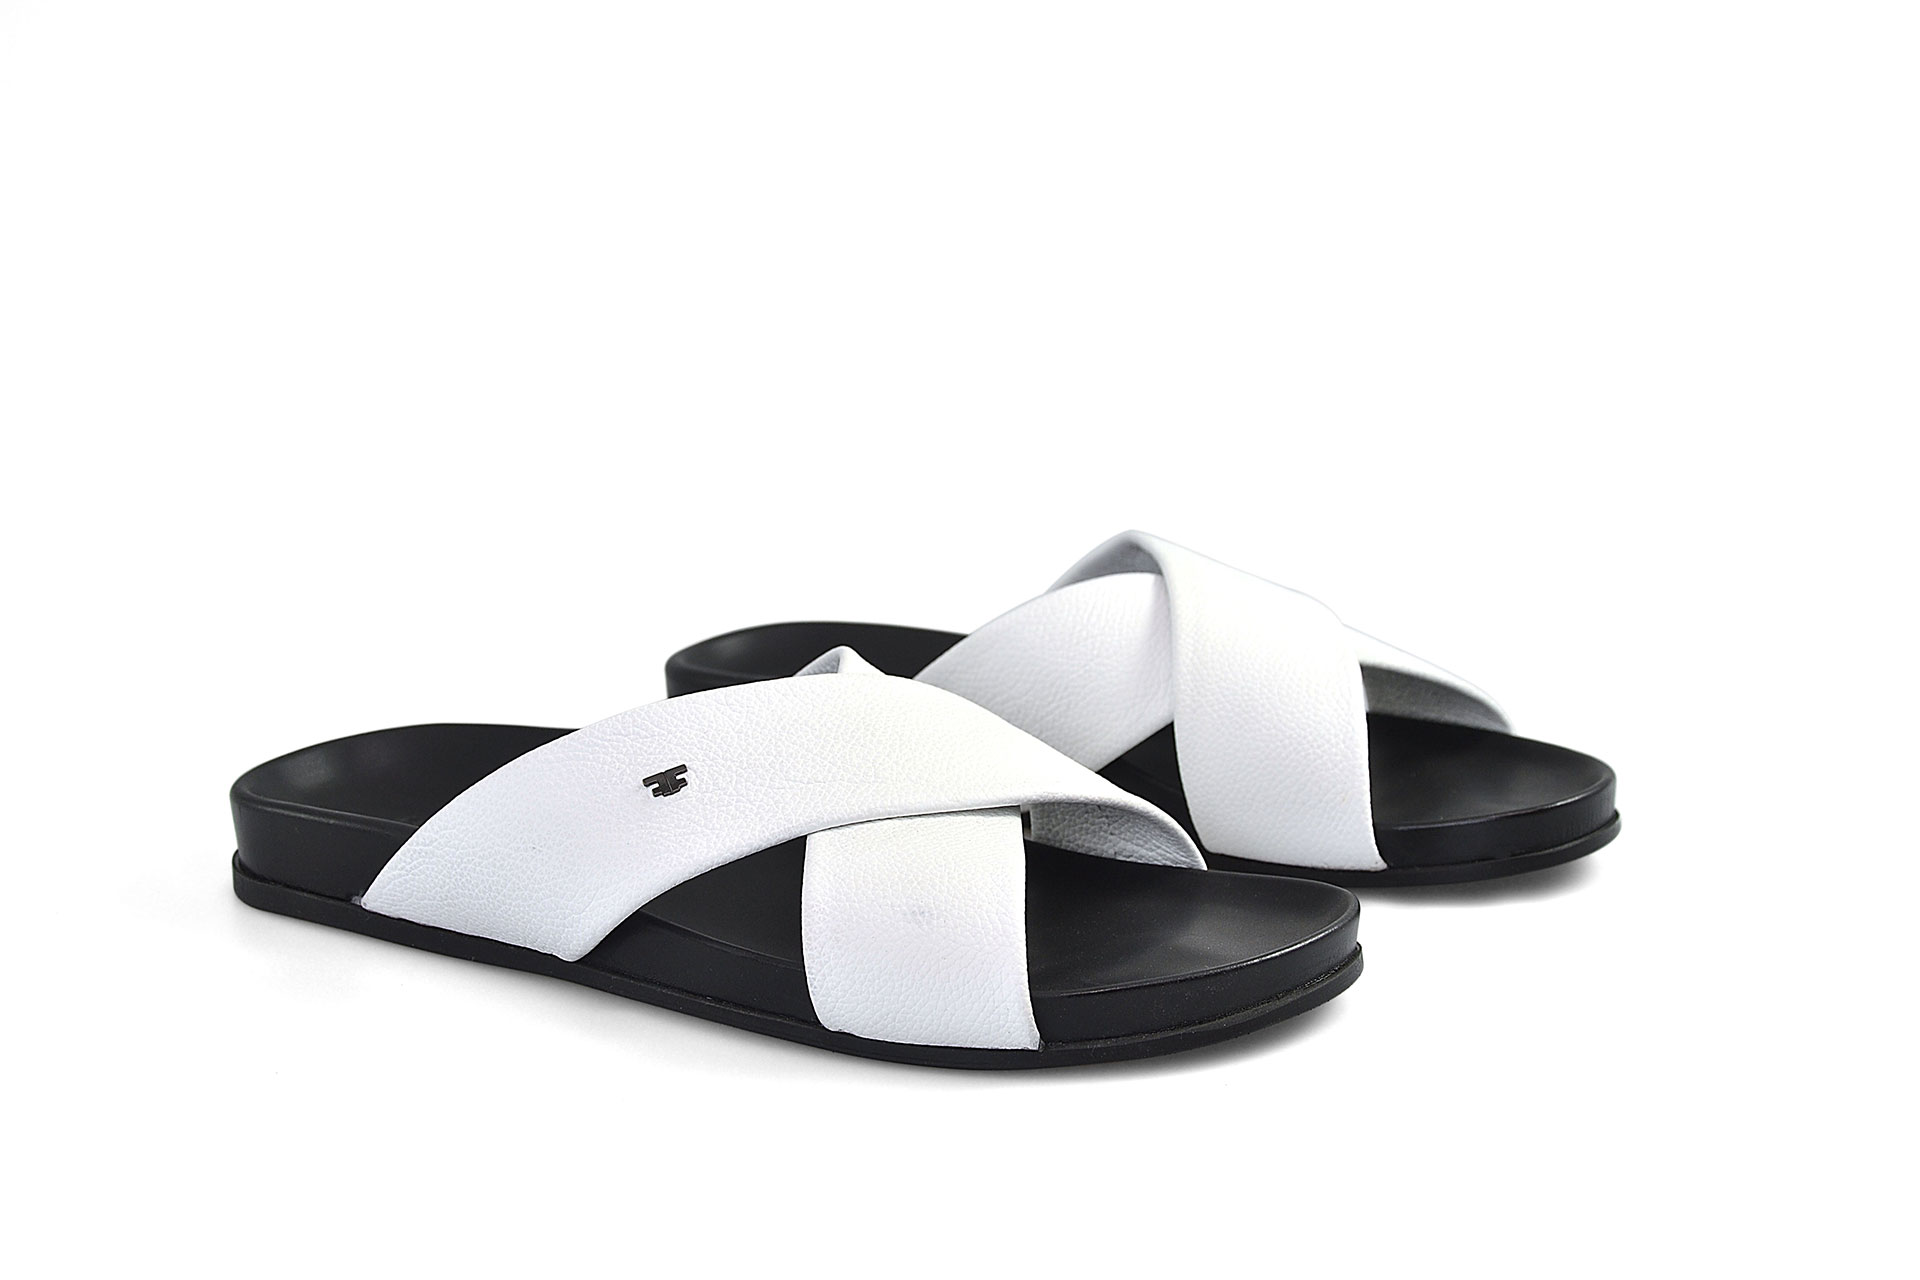 SHOES FIORANGELO MAN SS2021 ART. 92142 SANDALS BOTTALATO BIANCO WHITE